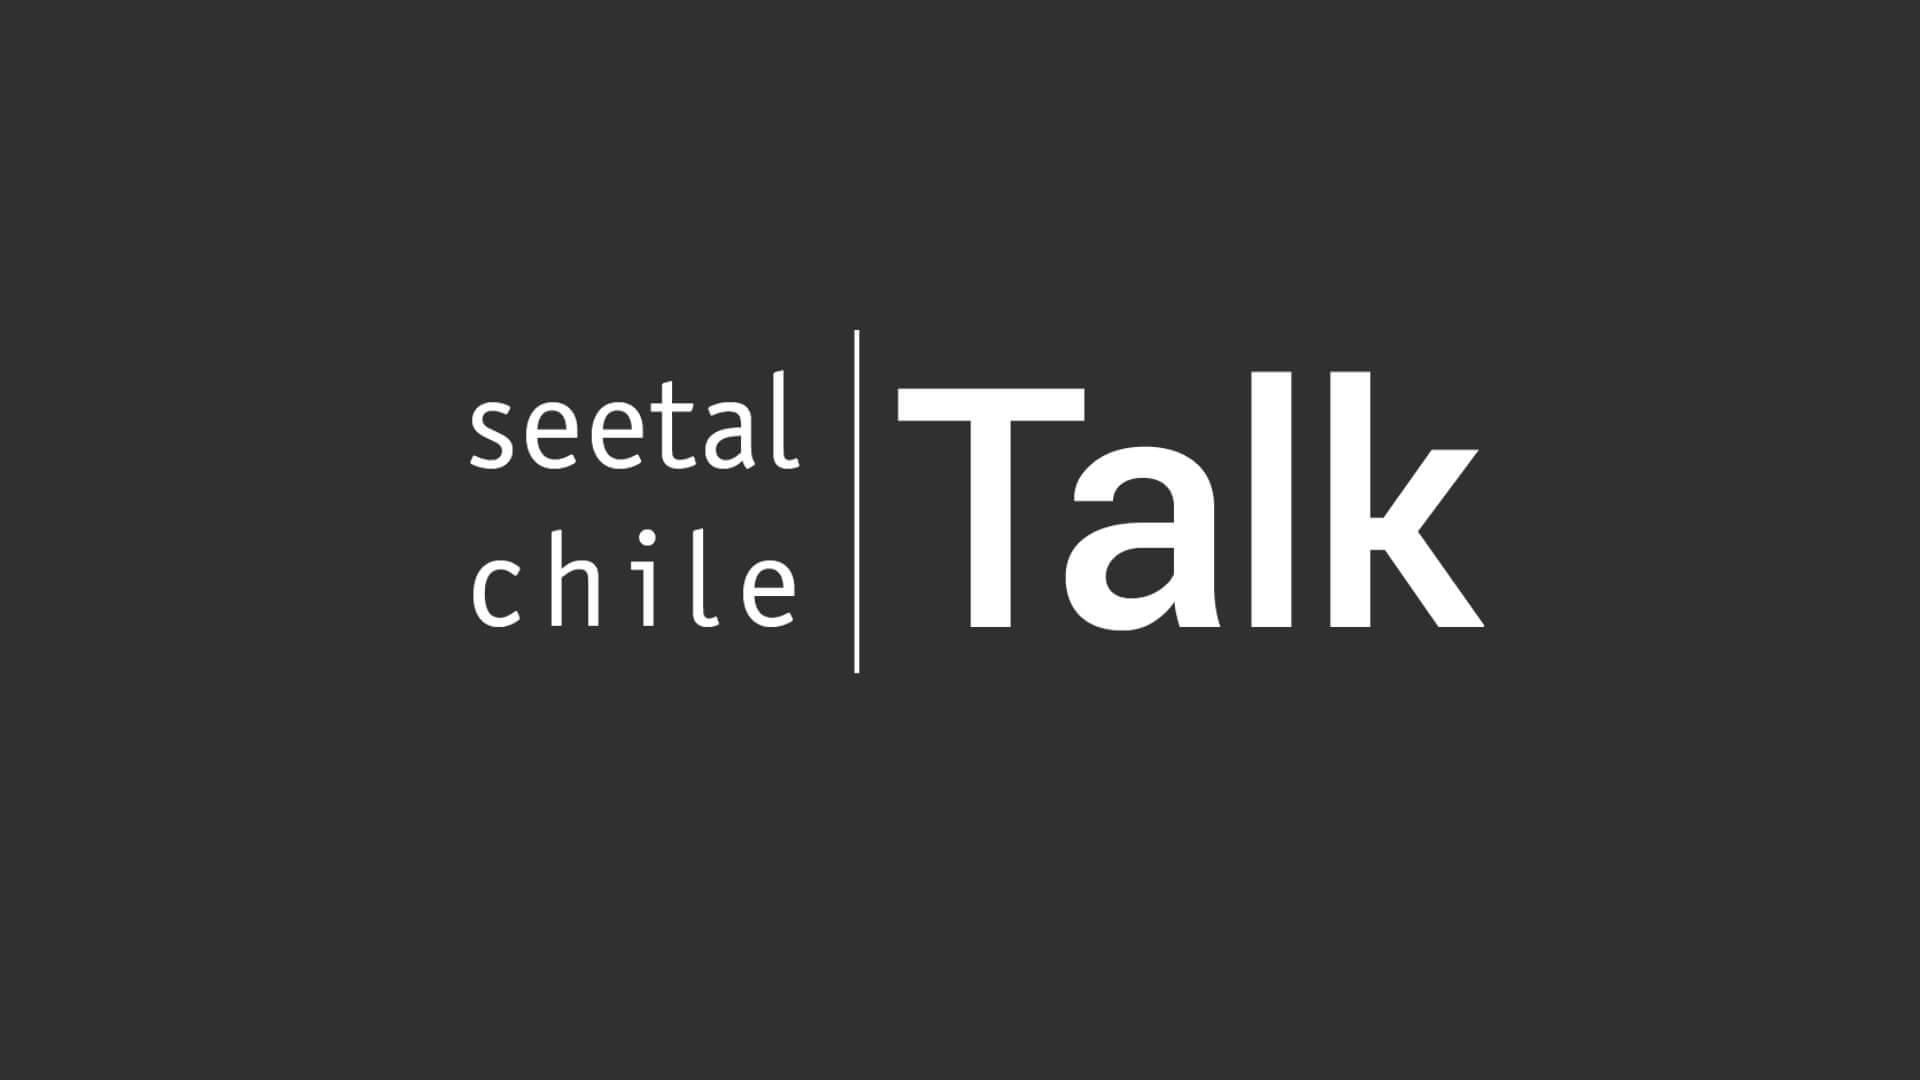 https://sermons.seetal-chile.ch/wp-content/uploads/2018/11/Serie_seetal-chile-Talk.jpg